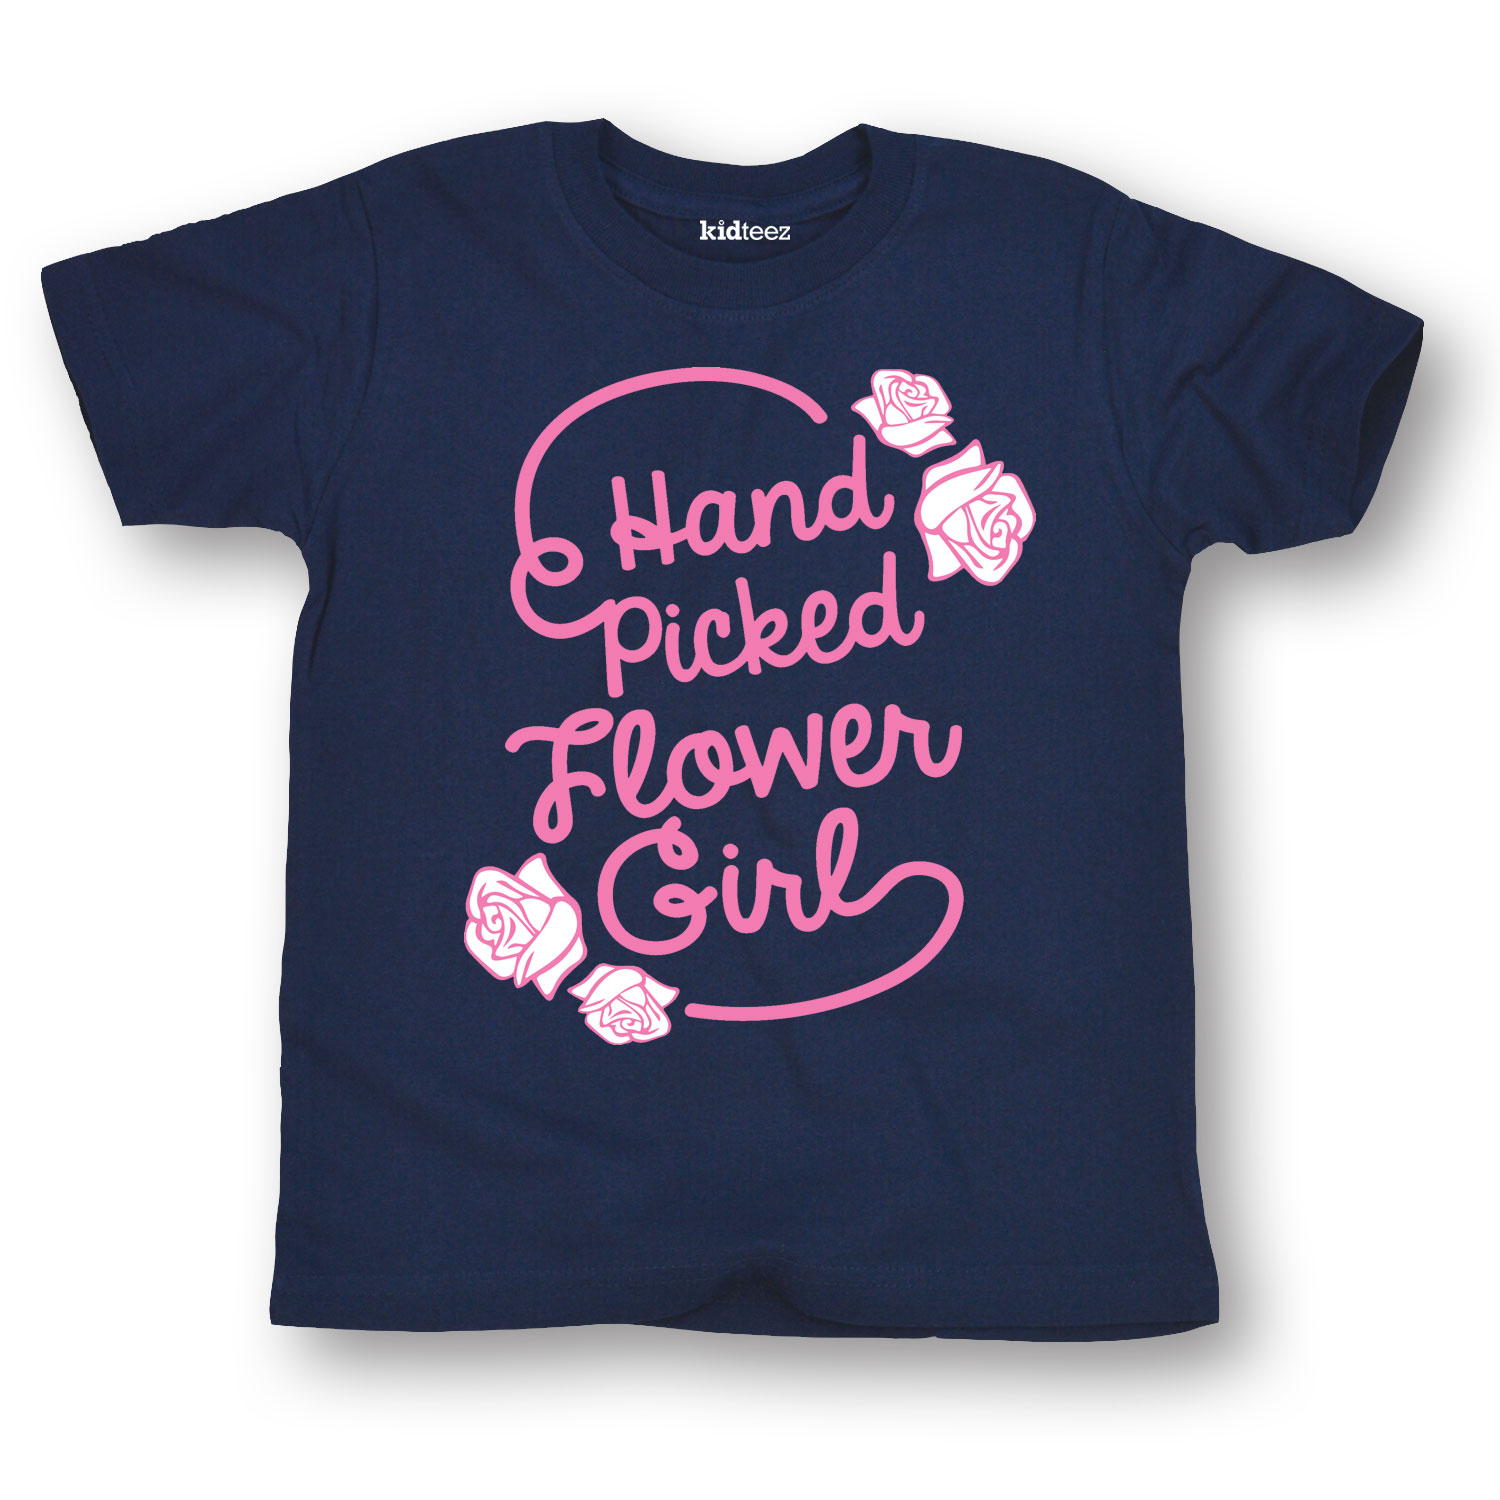 Hand Picked Flower Girl - Toddler Short Sleeve Tee